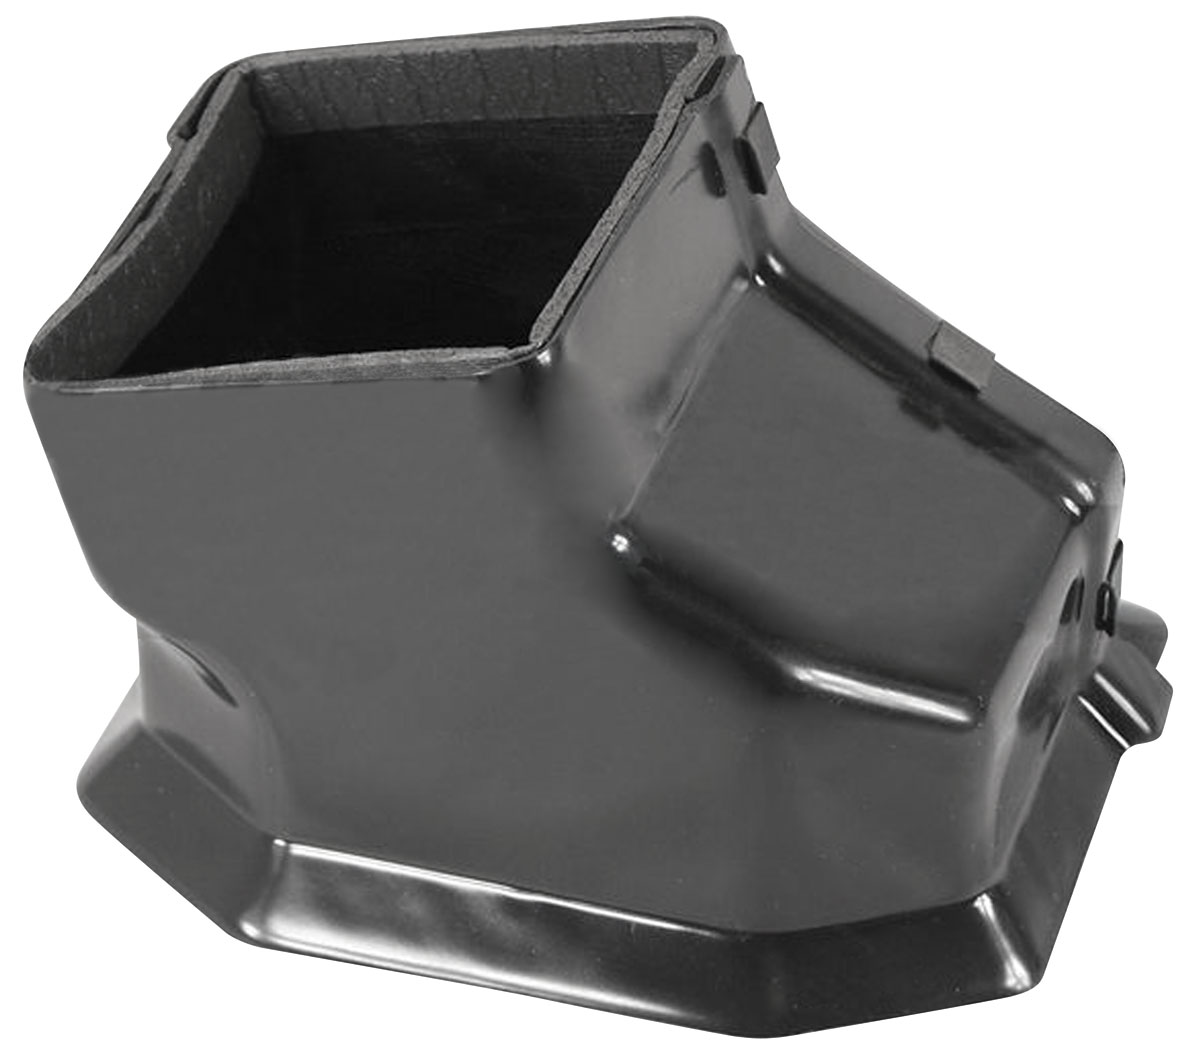 Heater Box Duct, 1959-60 Cadillac, Heater Only